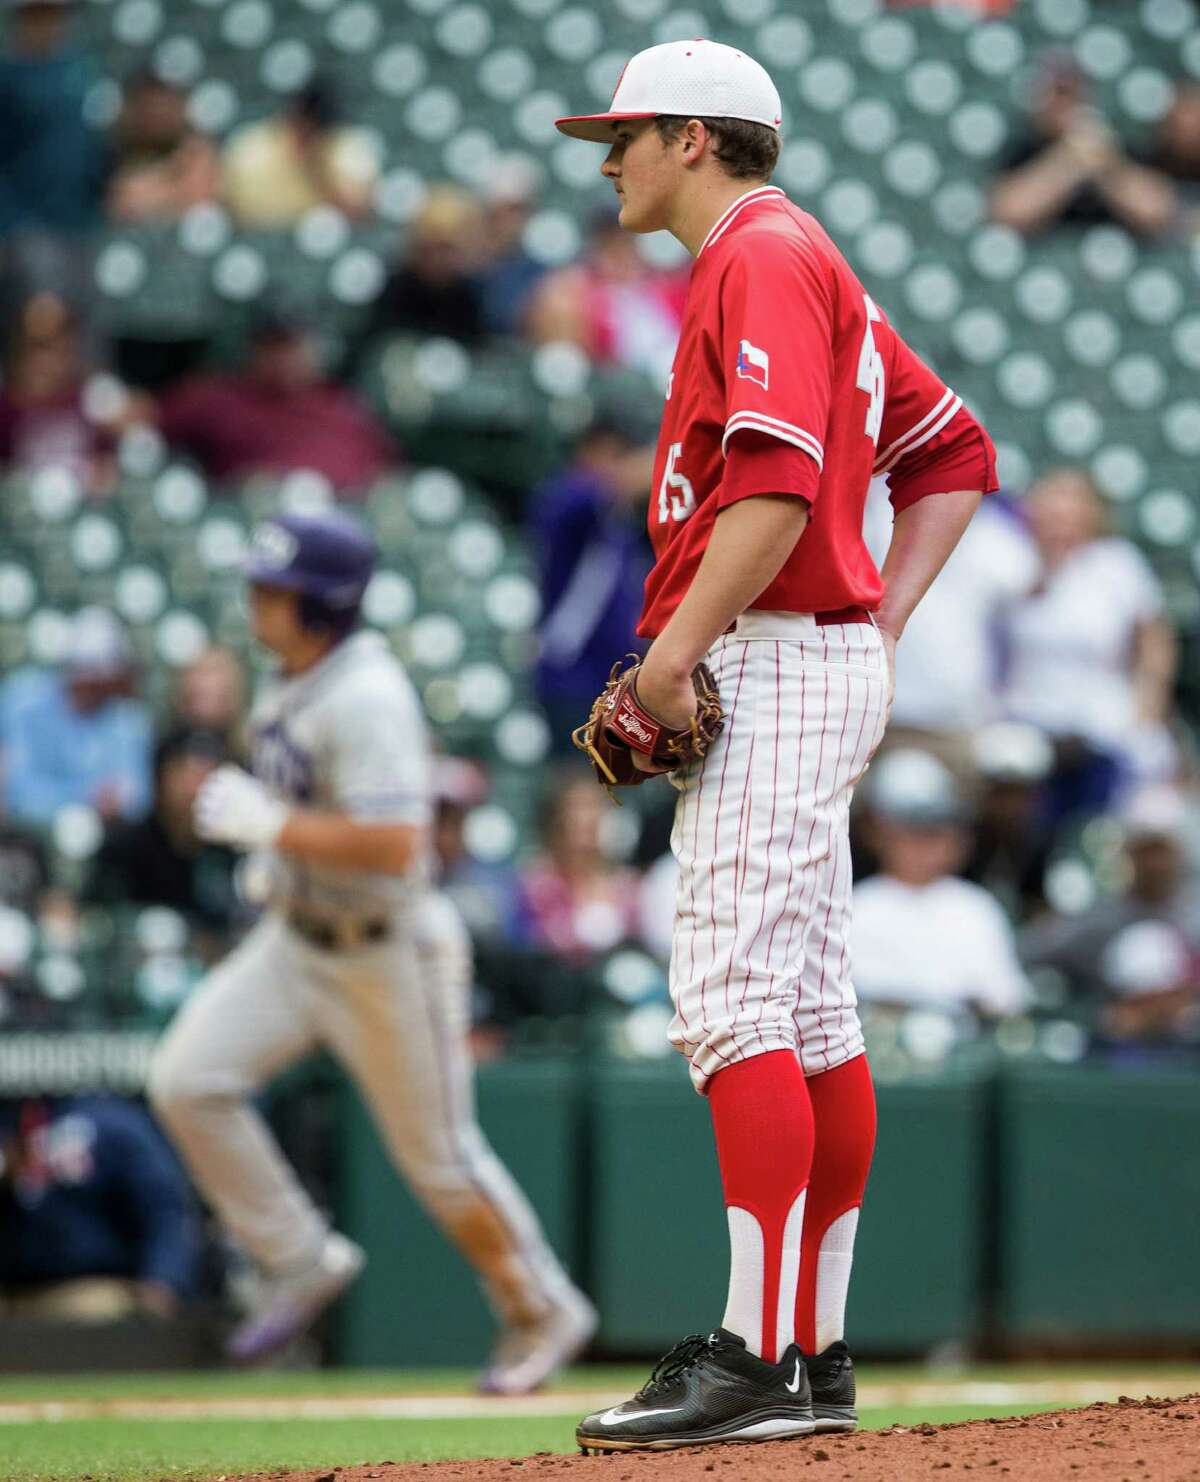 Houston pitcher Mitch Ullom (45) stands on the mound as TCU outfielder Josh Watson (7) rounds the bases after hitting a three-run home run during the third inning of a Houston College Classic baseball game at Minute Maid Park on Sunday, Feb. 28, 2016, in Houston.